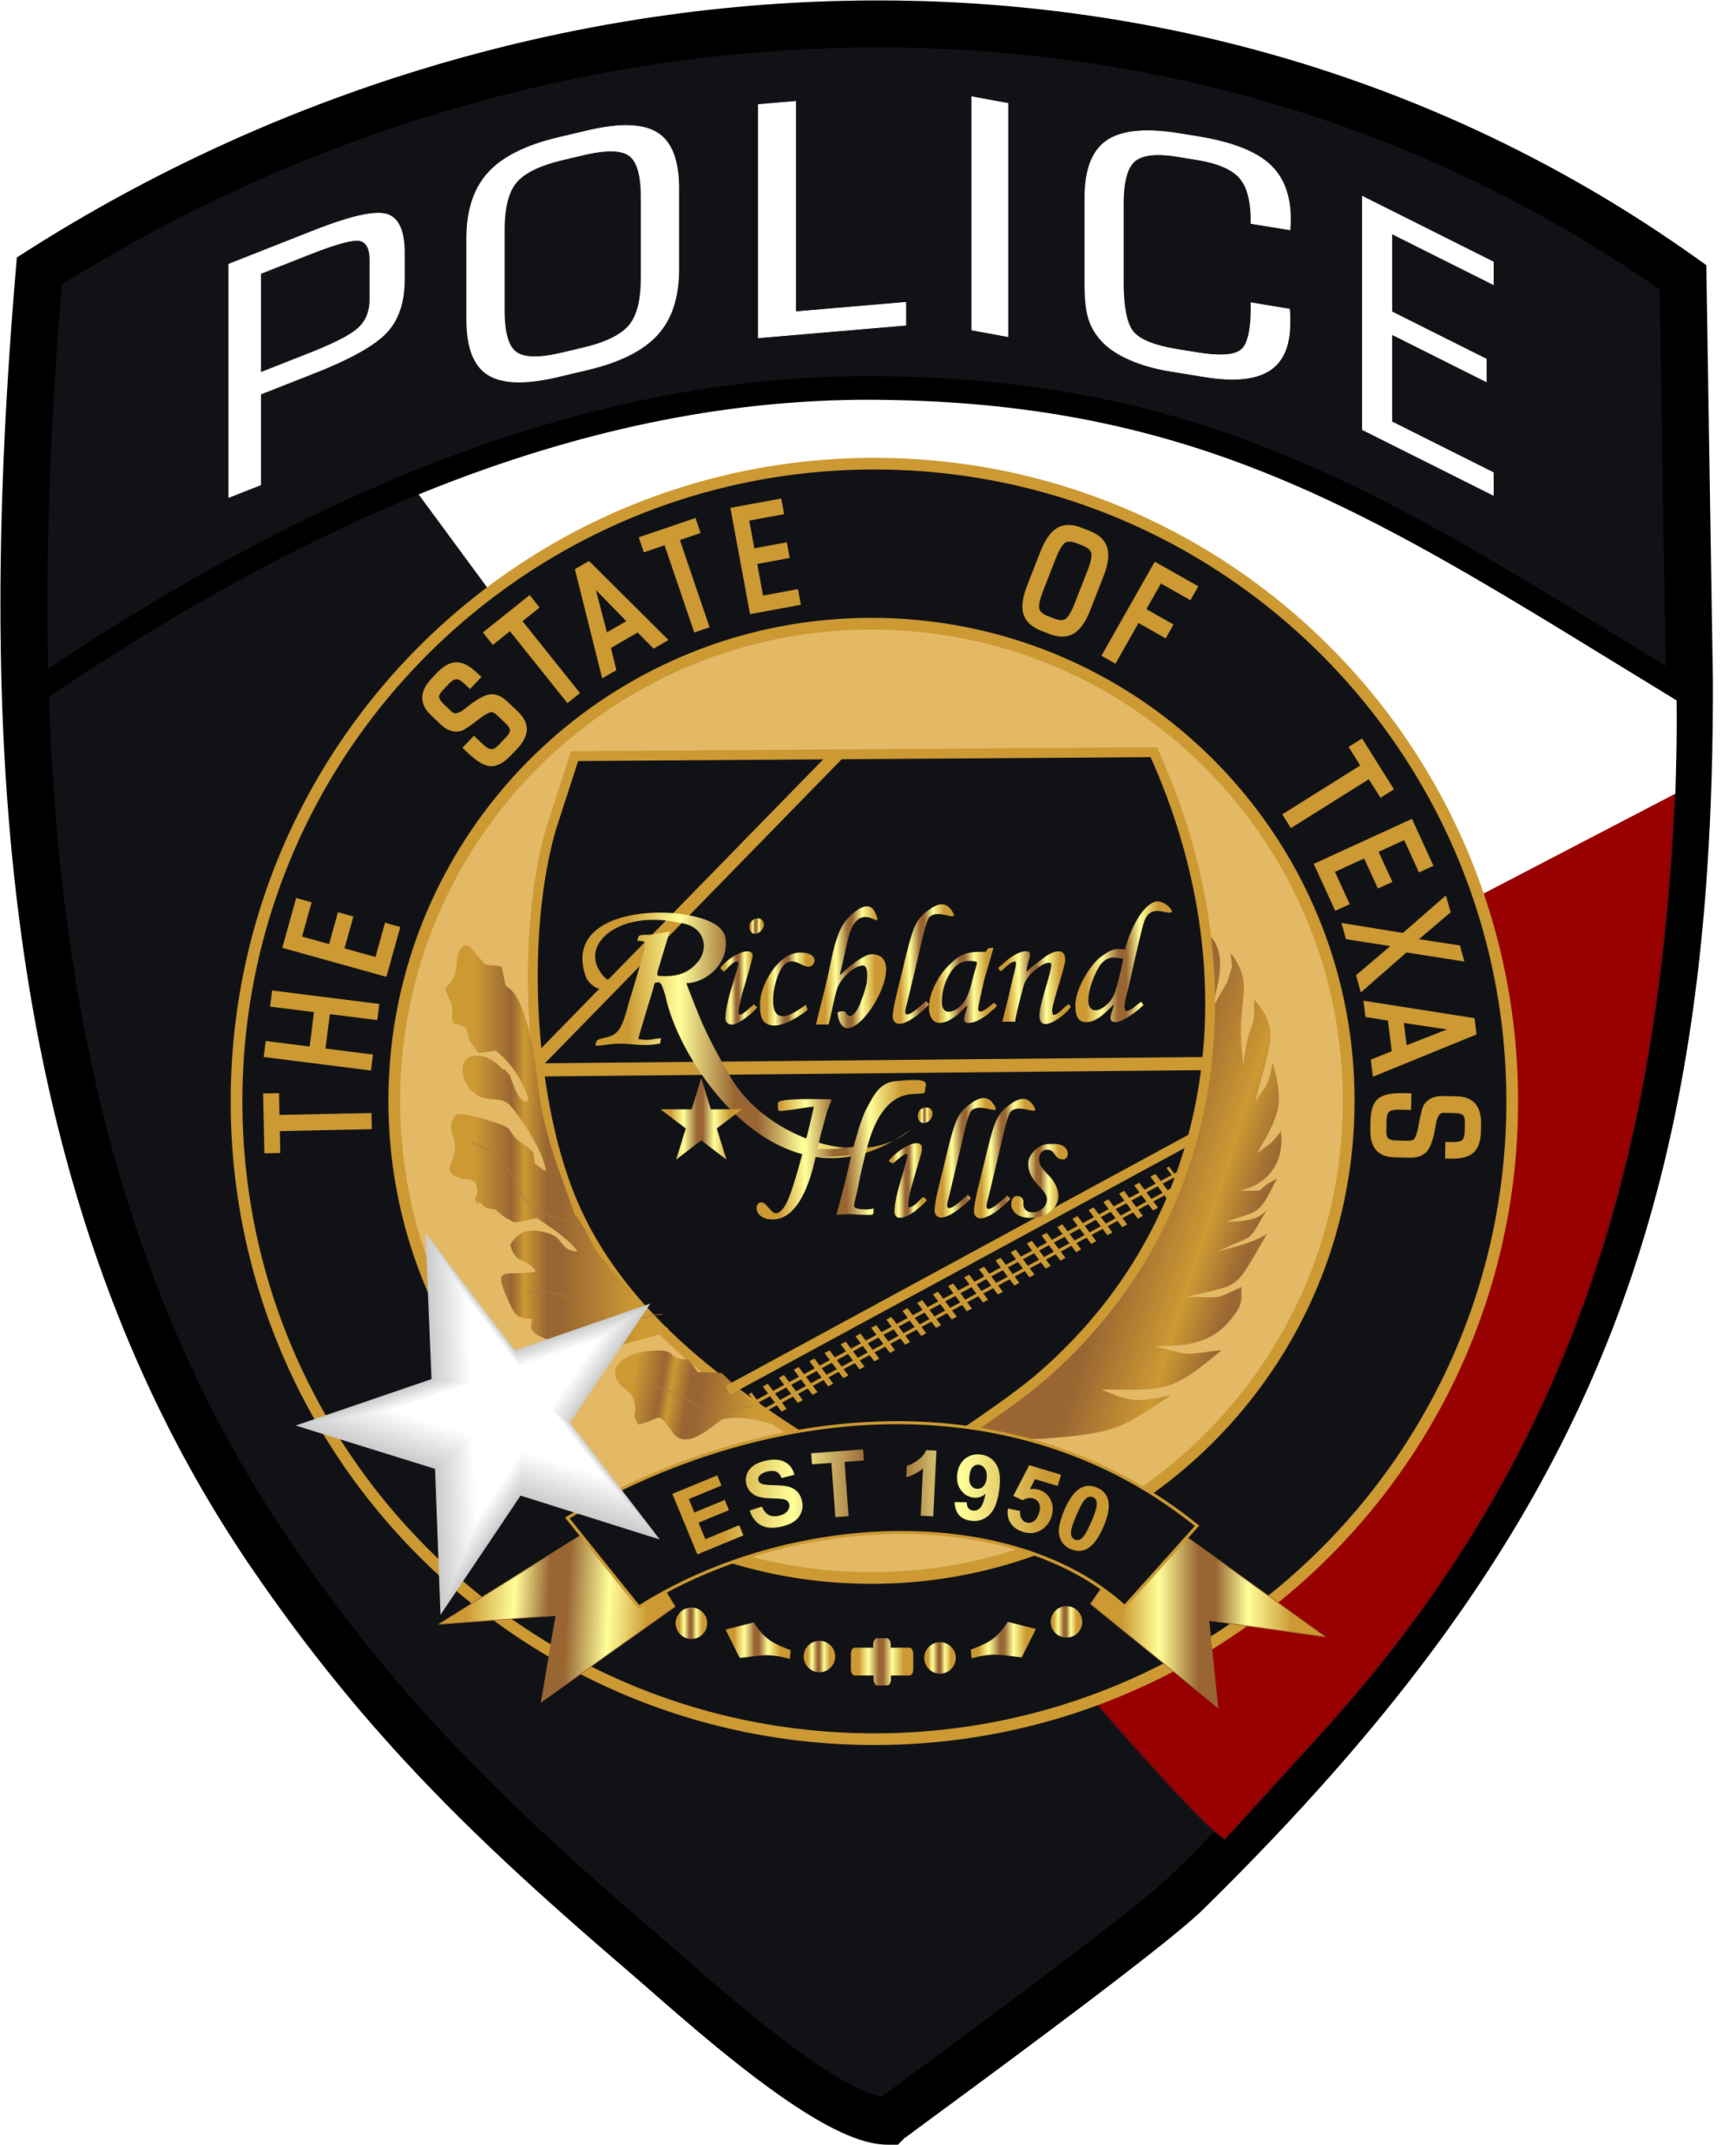 Chief Of Police City Of Richland Hills Tx